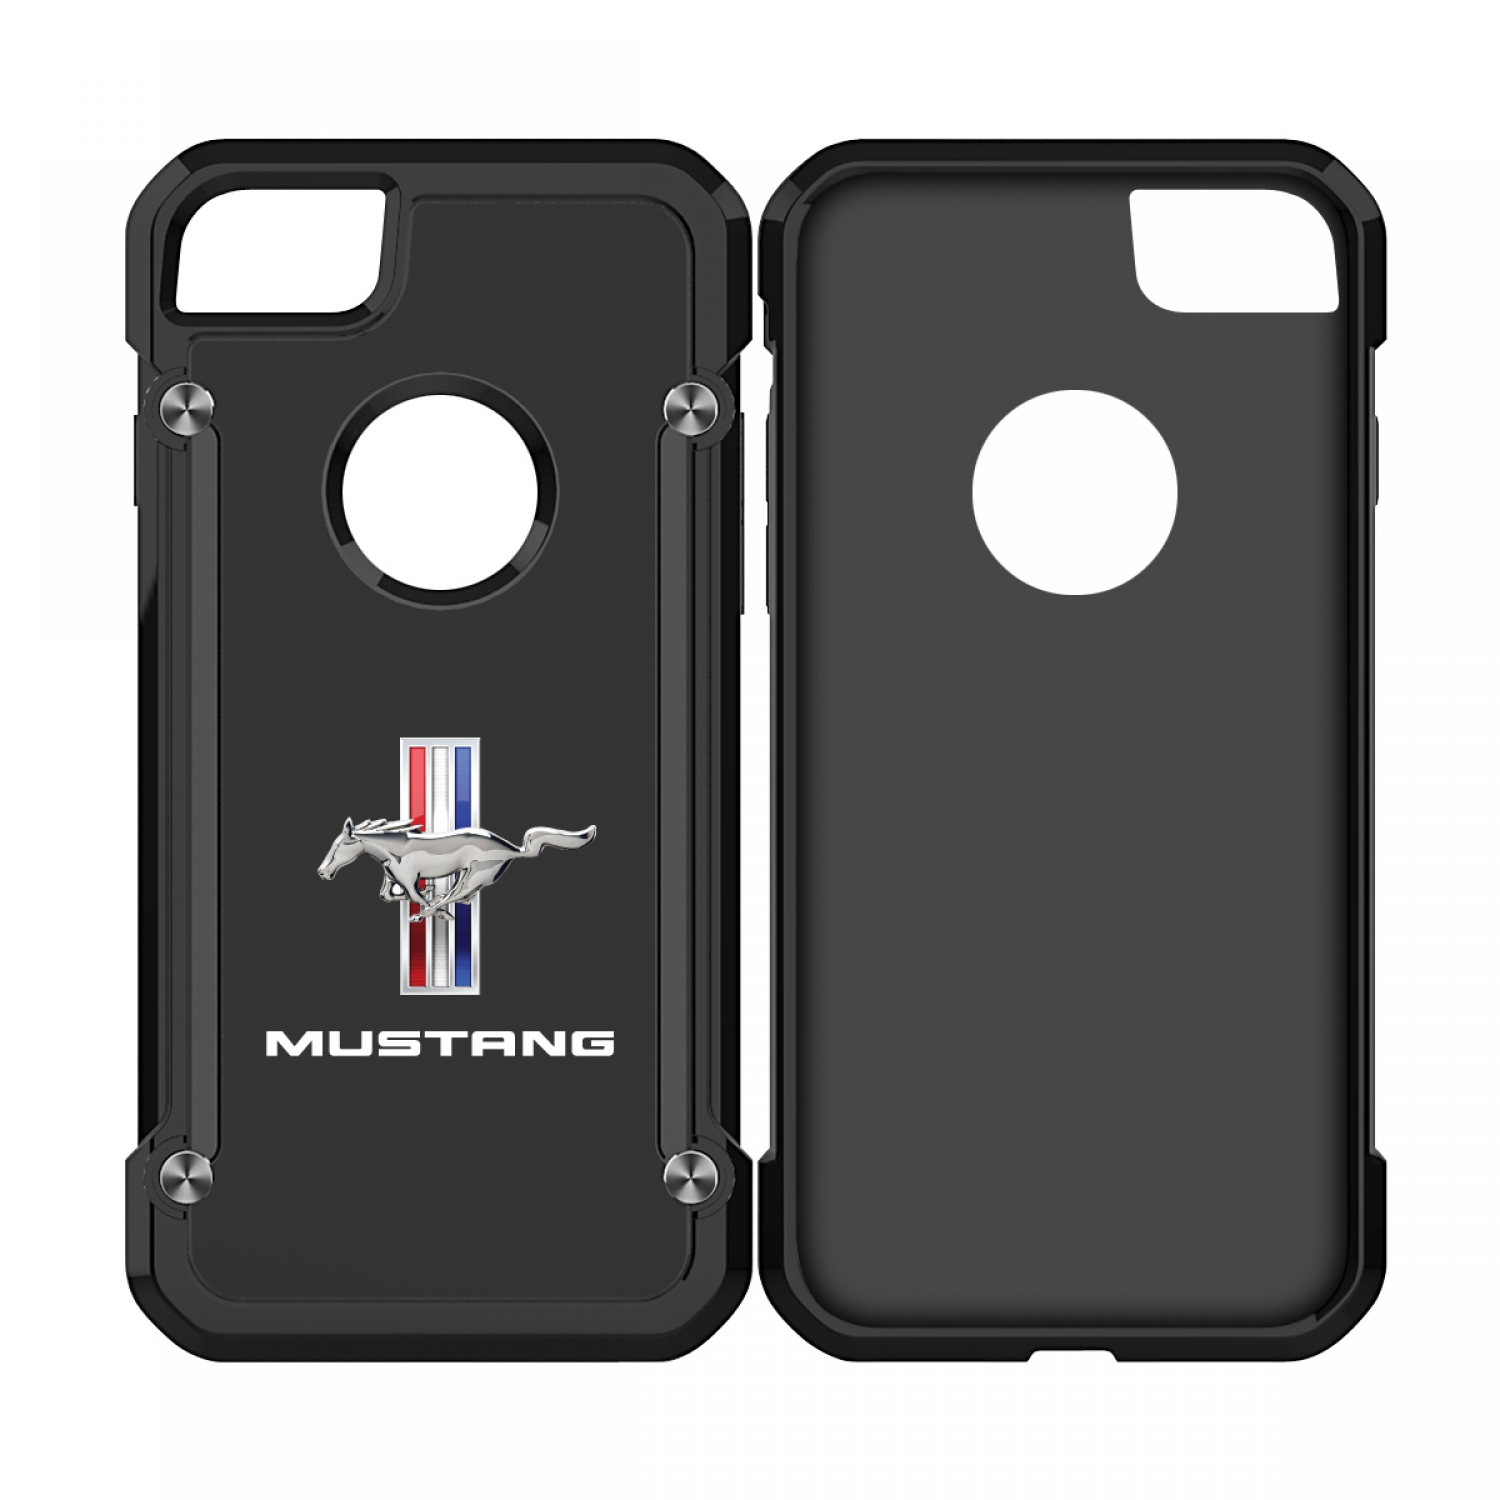 Ford Mustang Tri-Bar iPhone 7 iPhone 8 TPU Shockproof Clear Cell Phone Case